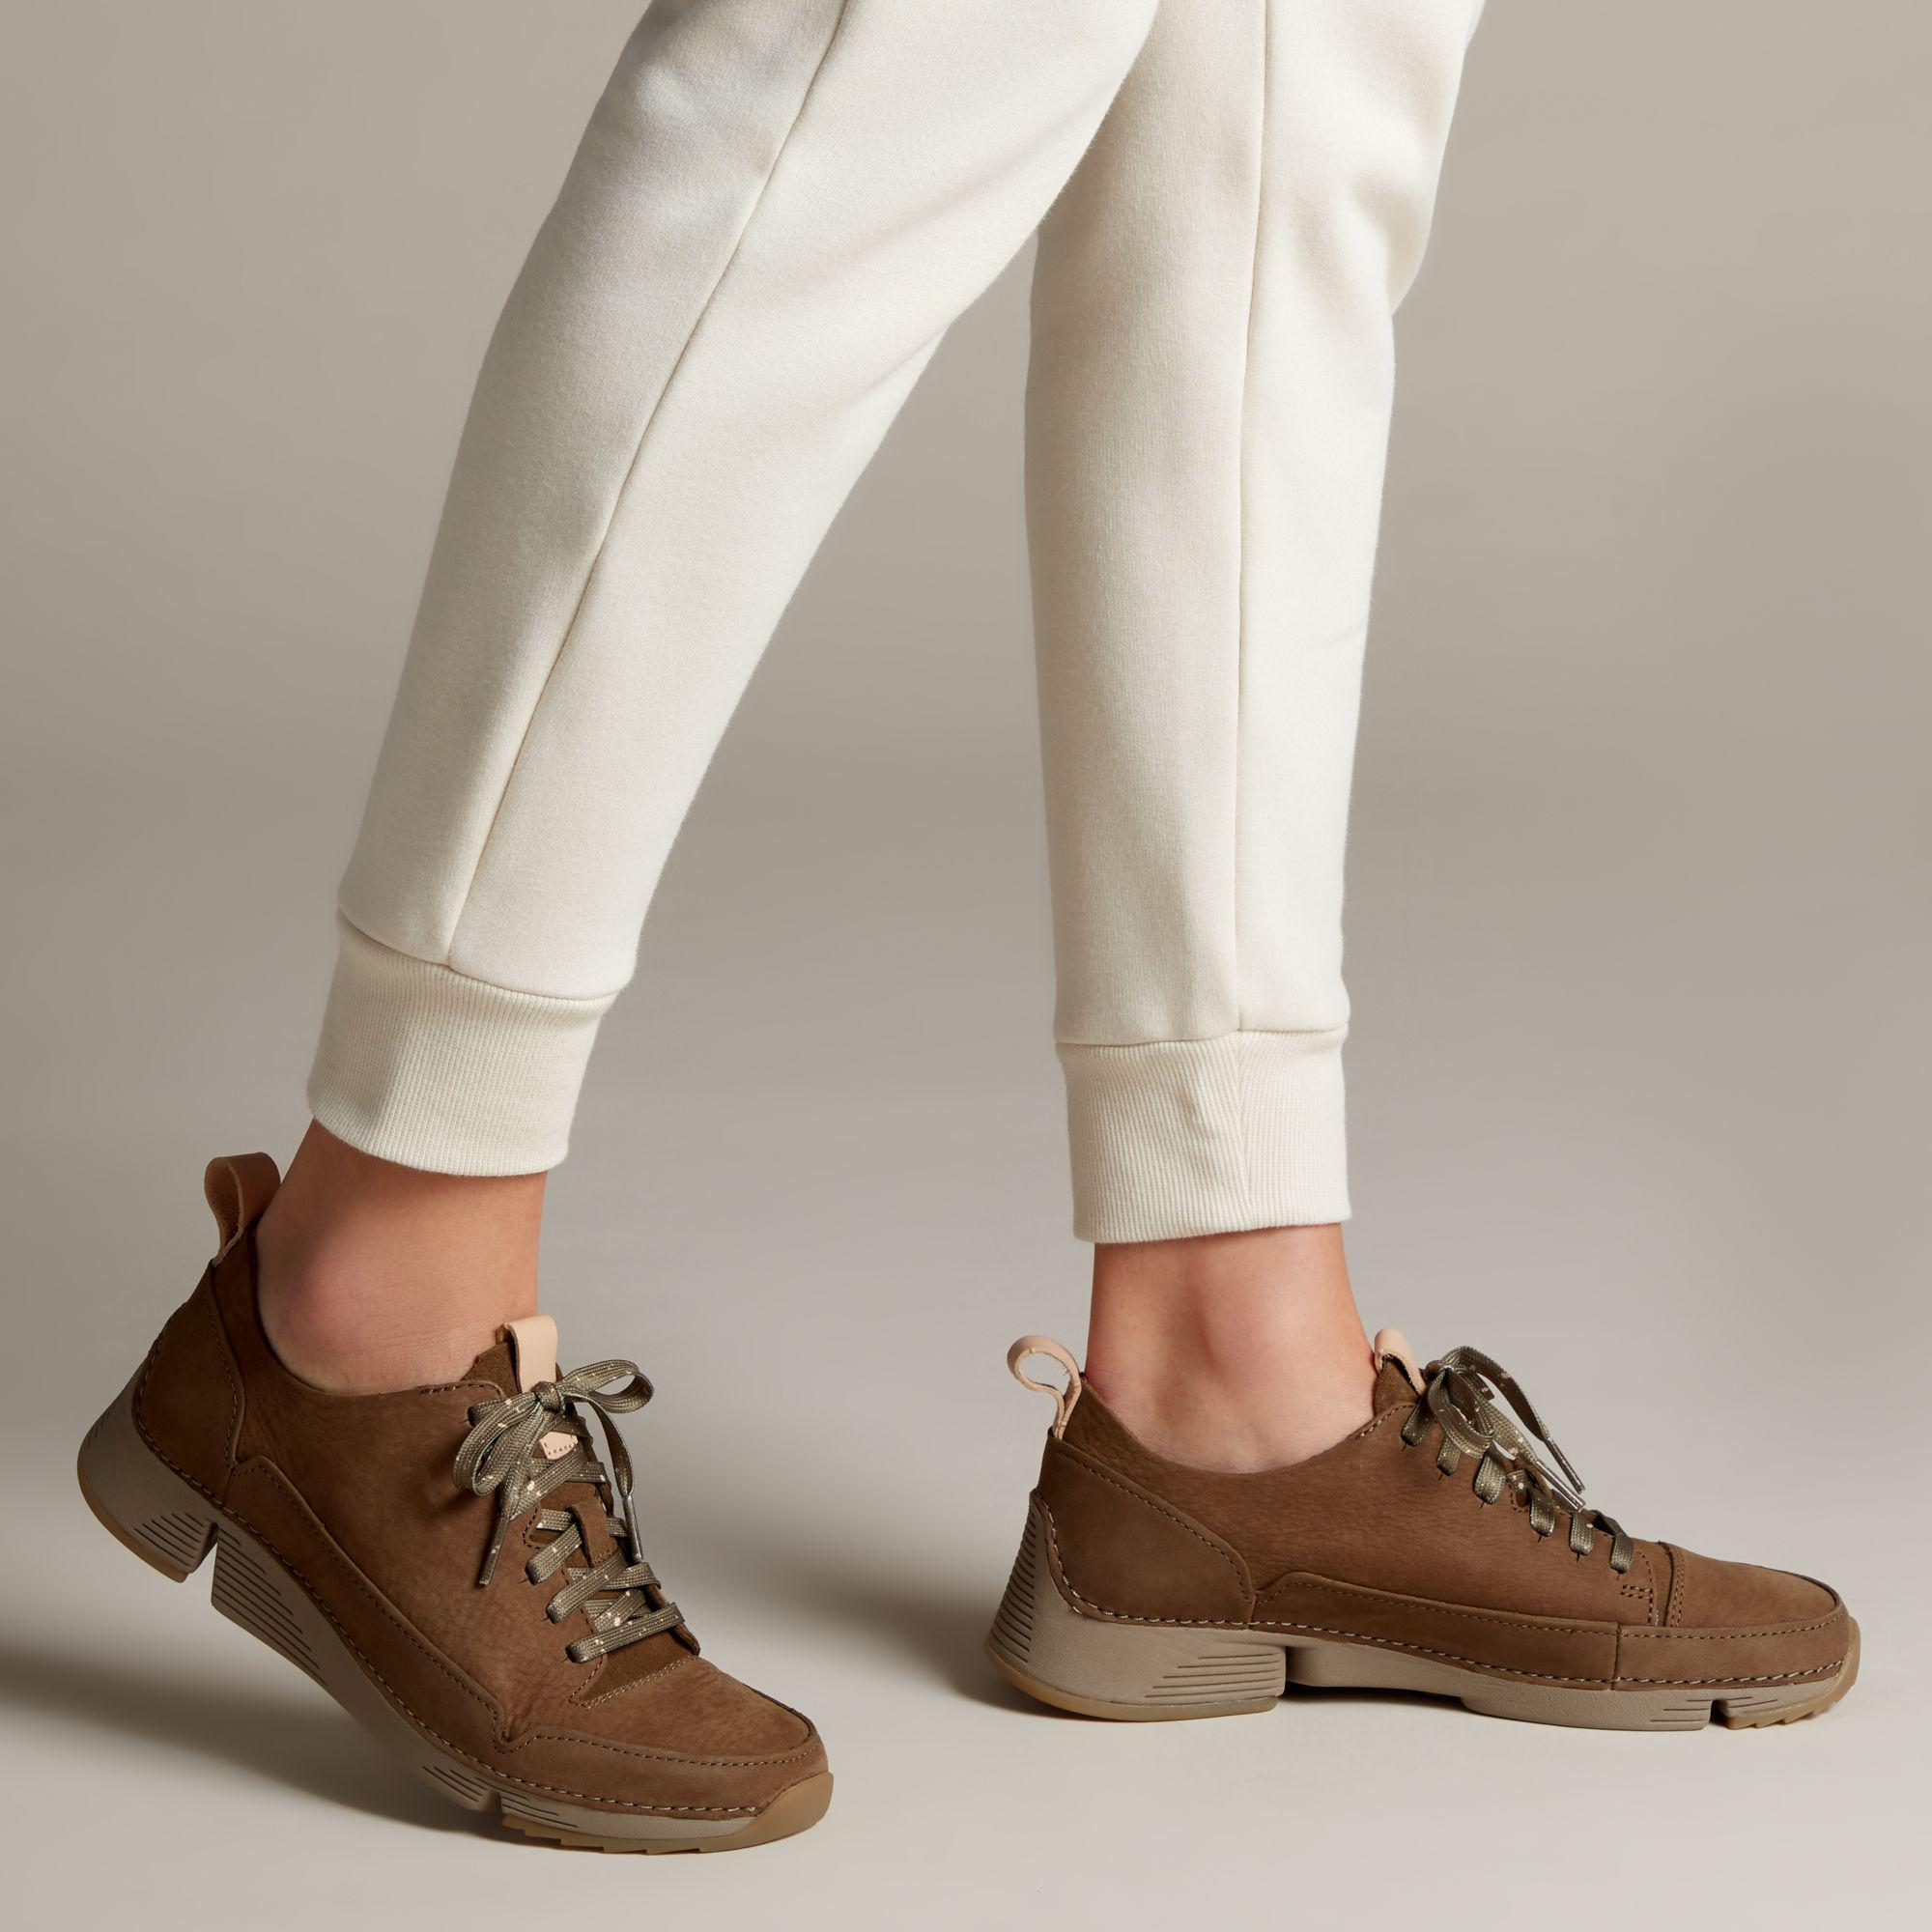 choose authentic beauty price remains stable Clarks Rubber Tri Spark - Lyst